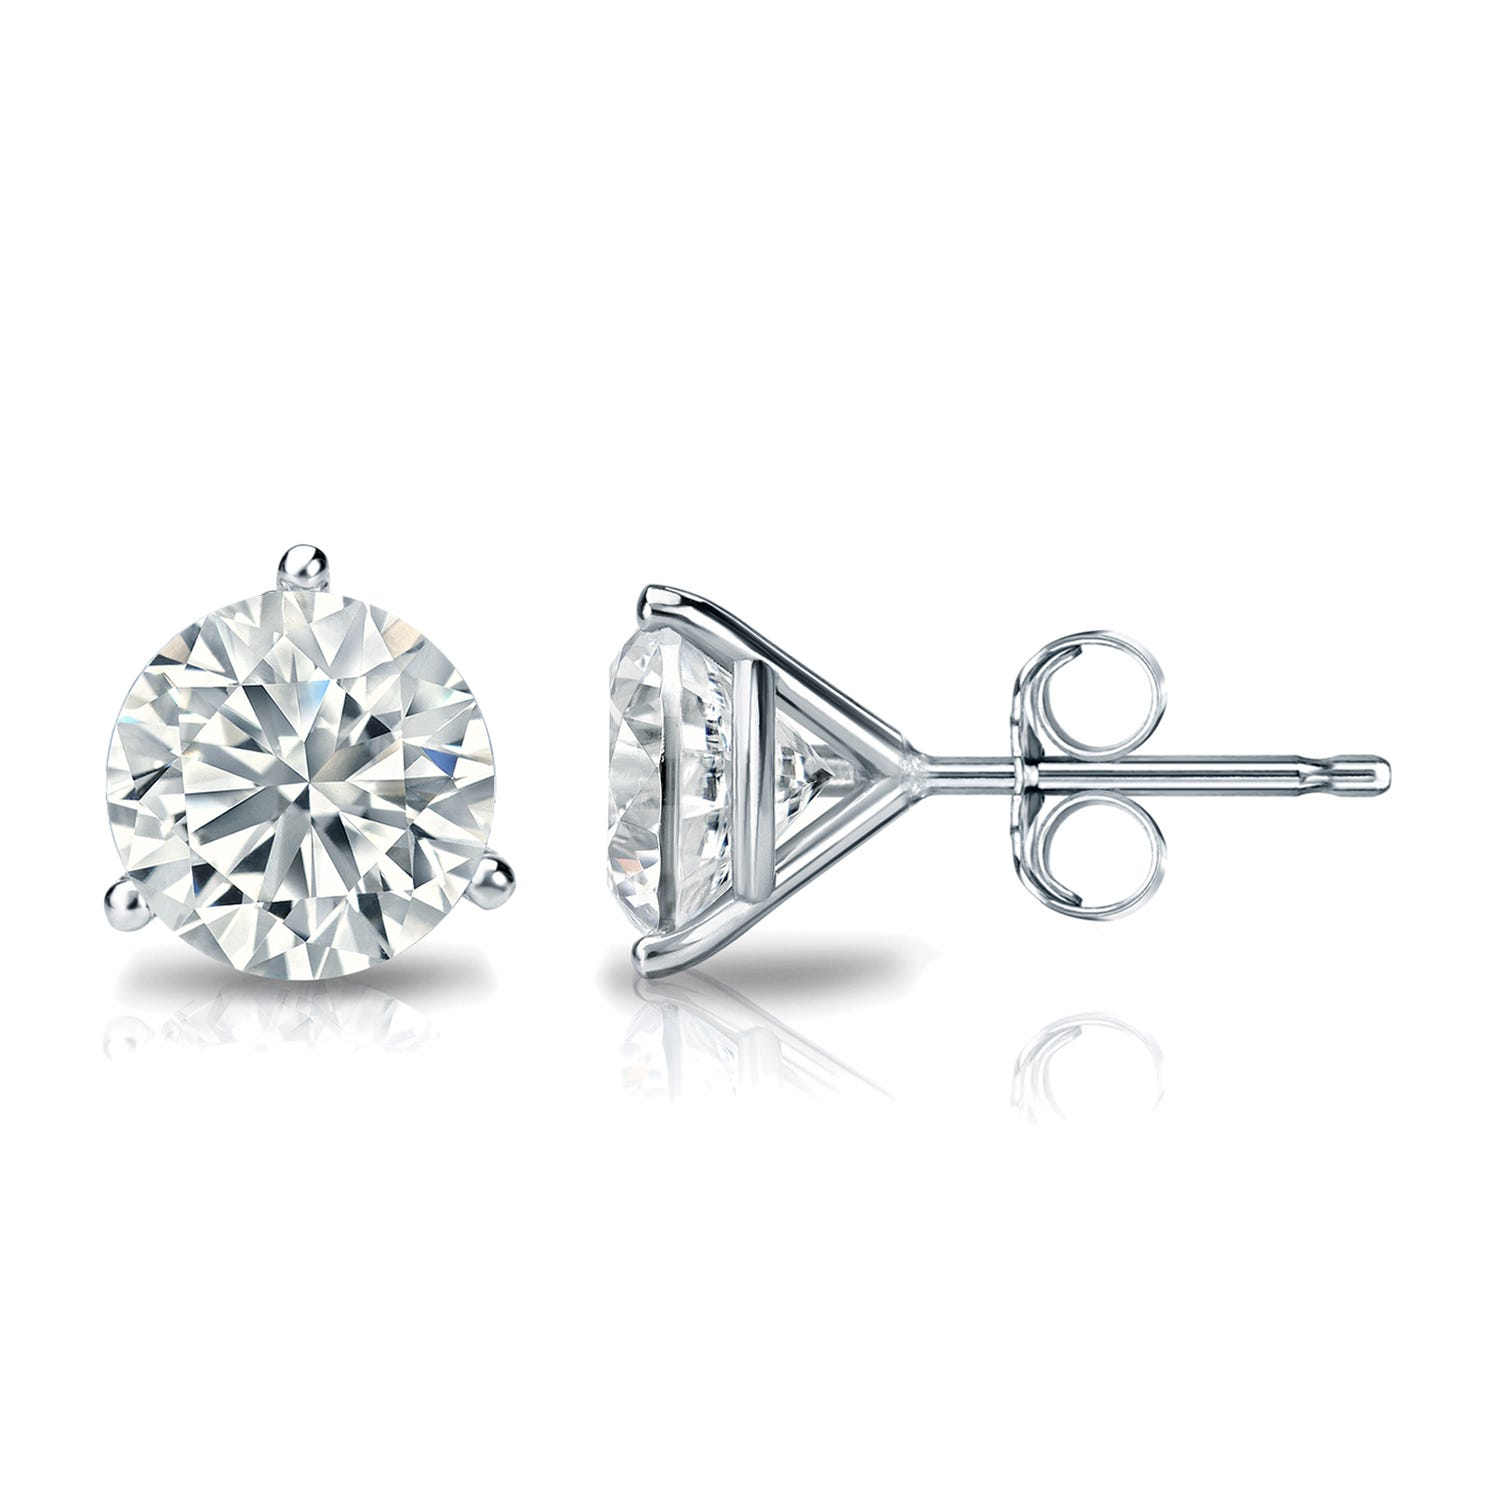 1-1/2 CTTW Round Diamond Solitaire Stud Earrings IJ I1 in Platinum IGI Certified 3-Prong Setting